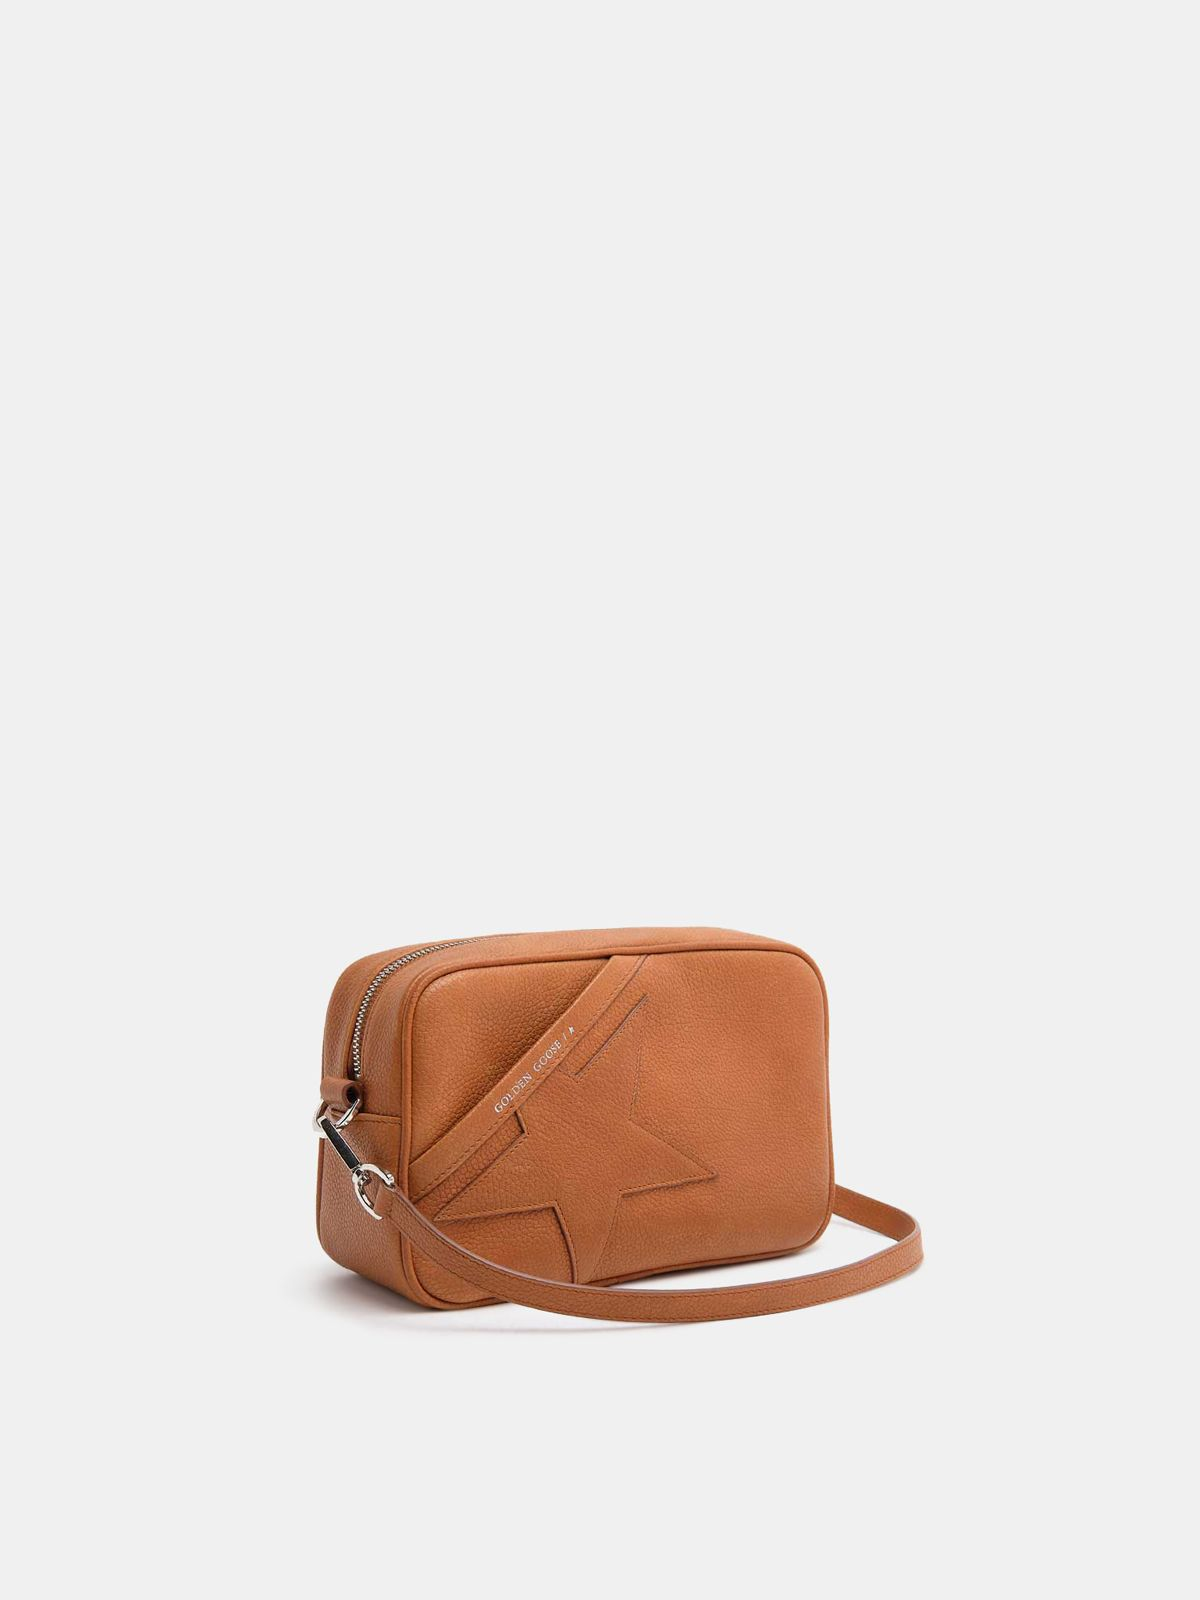 Golden Goose - Tan Star Bag made of hammered leather in